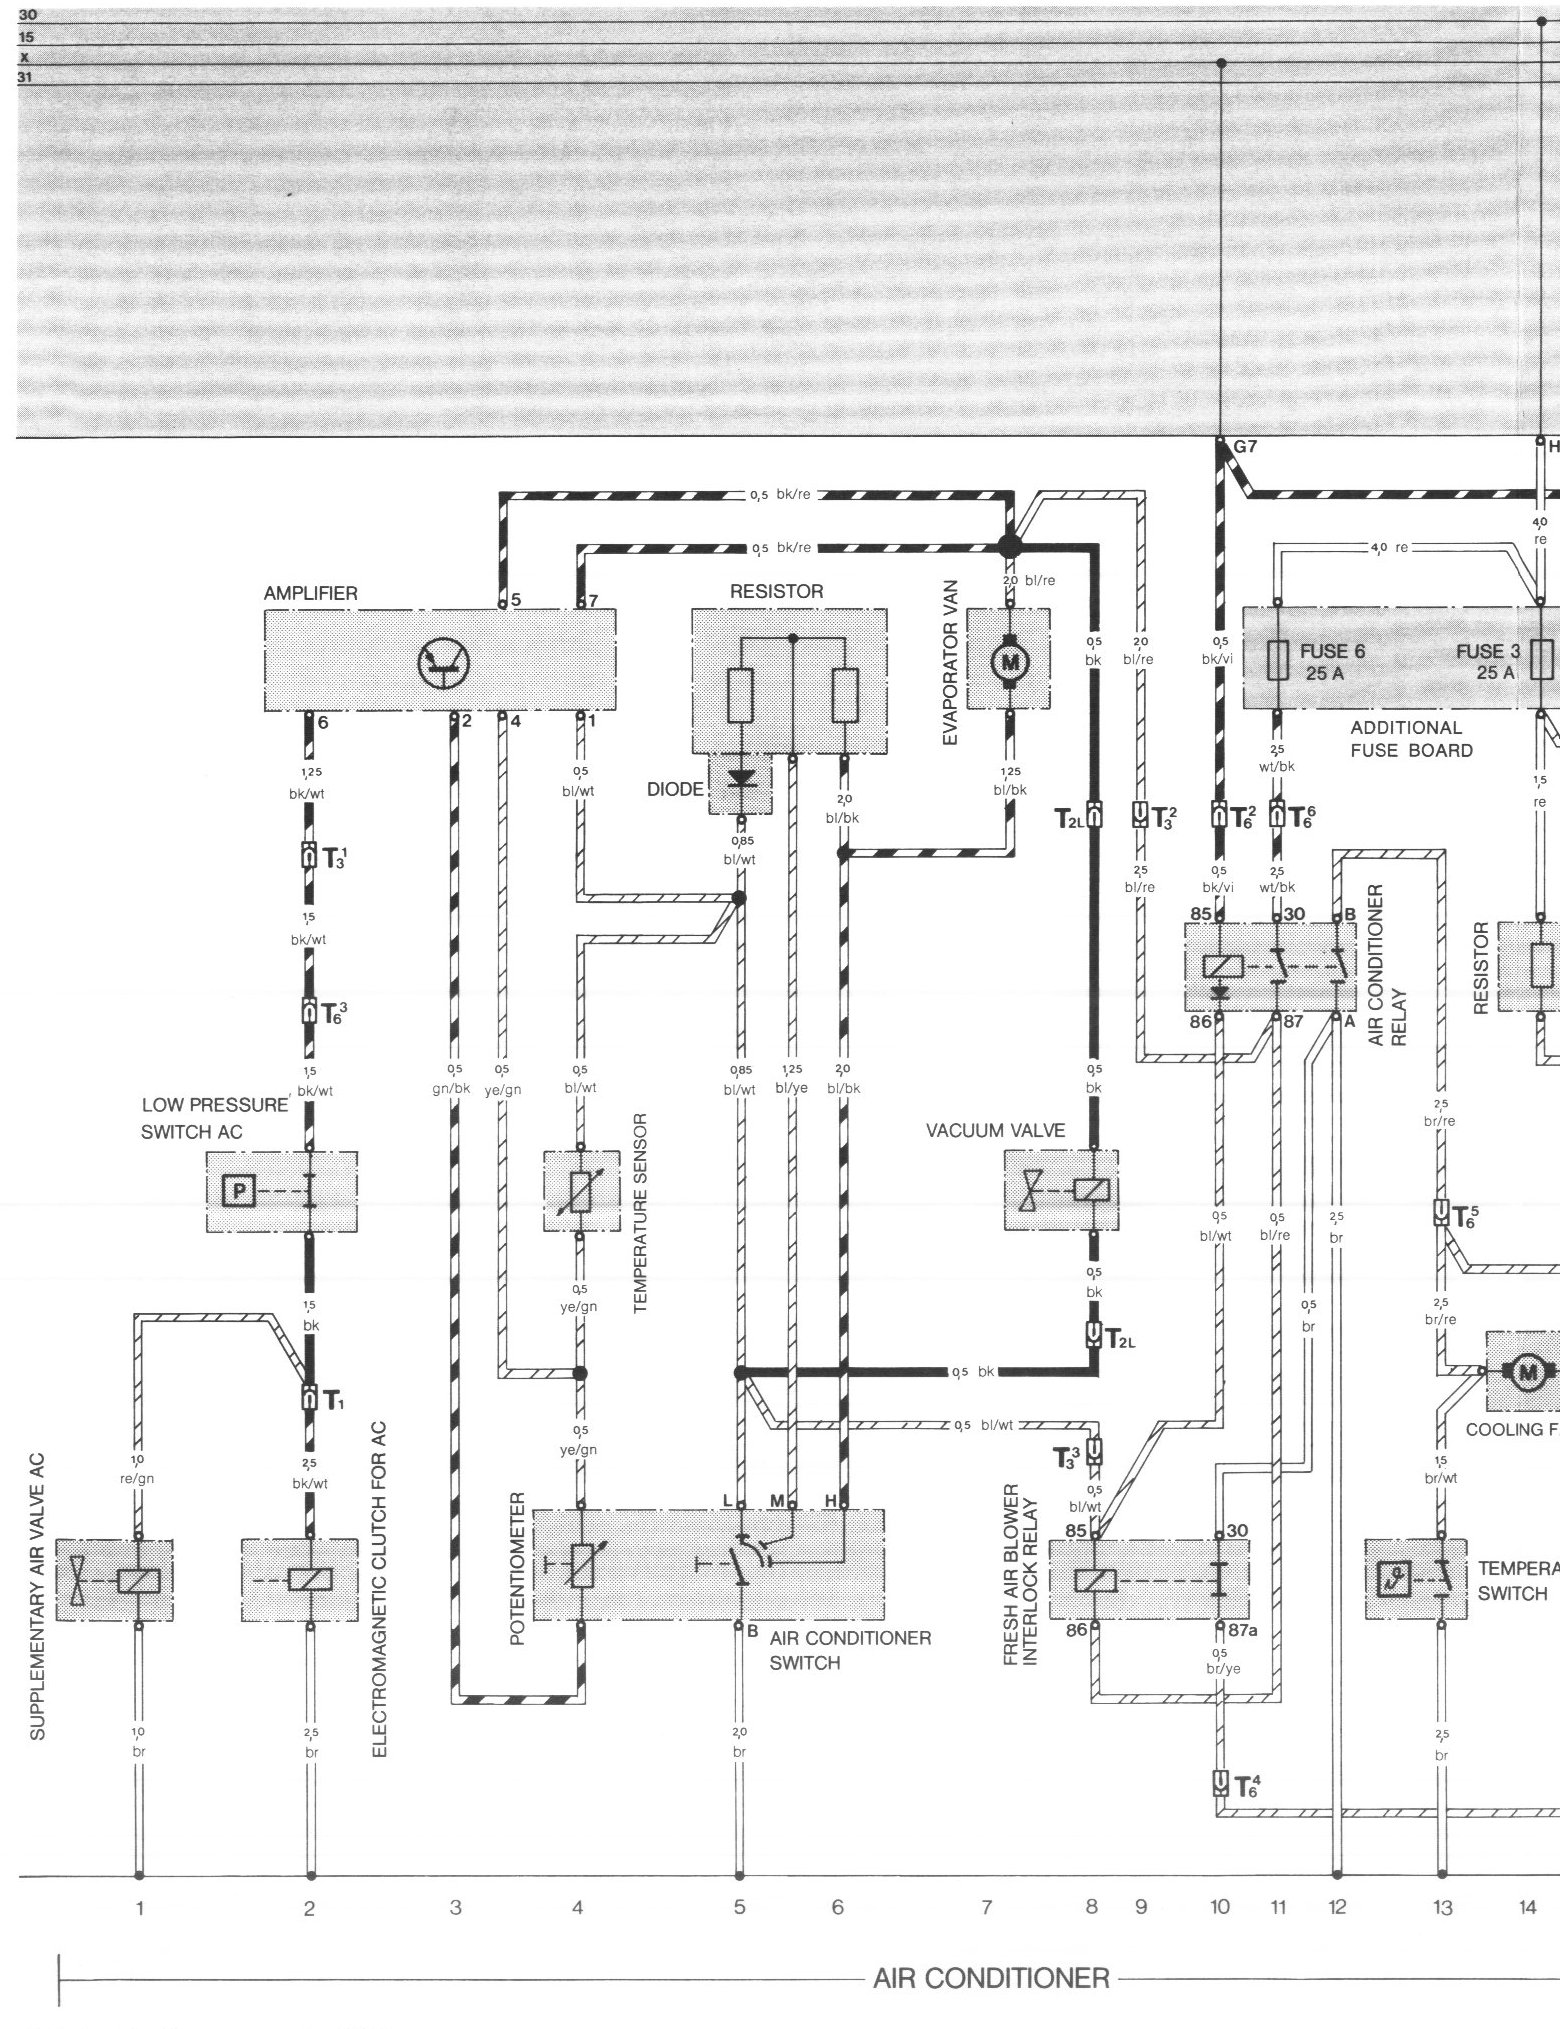 Pelican Parts Porsche 924 944 Electrical Diagrams Elect Wiring Diagram A C Page 1